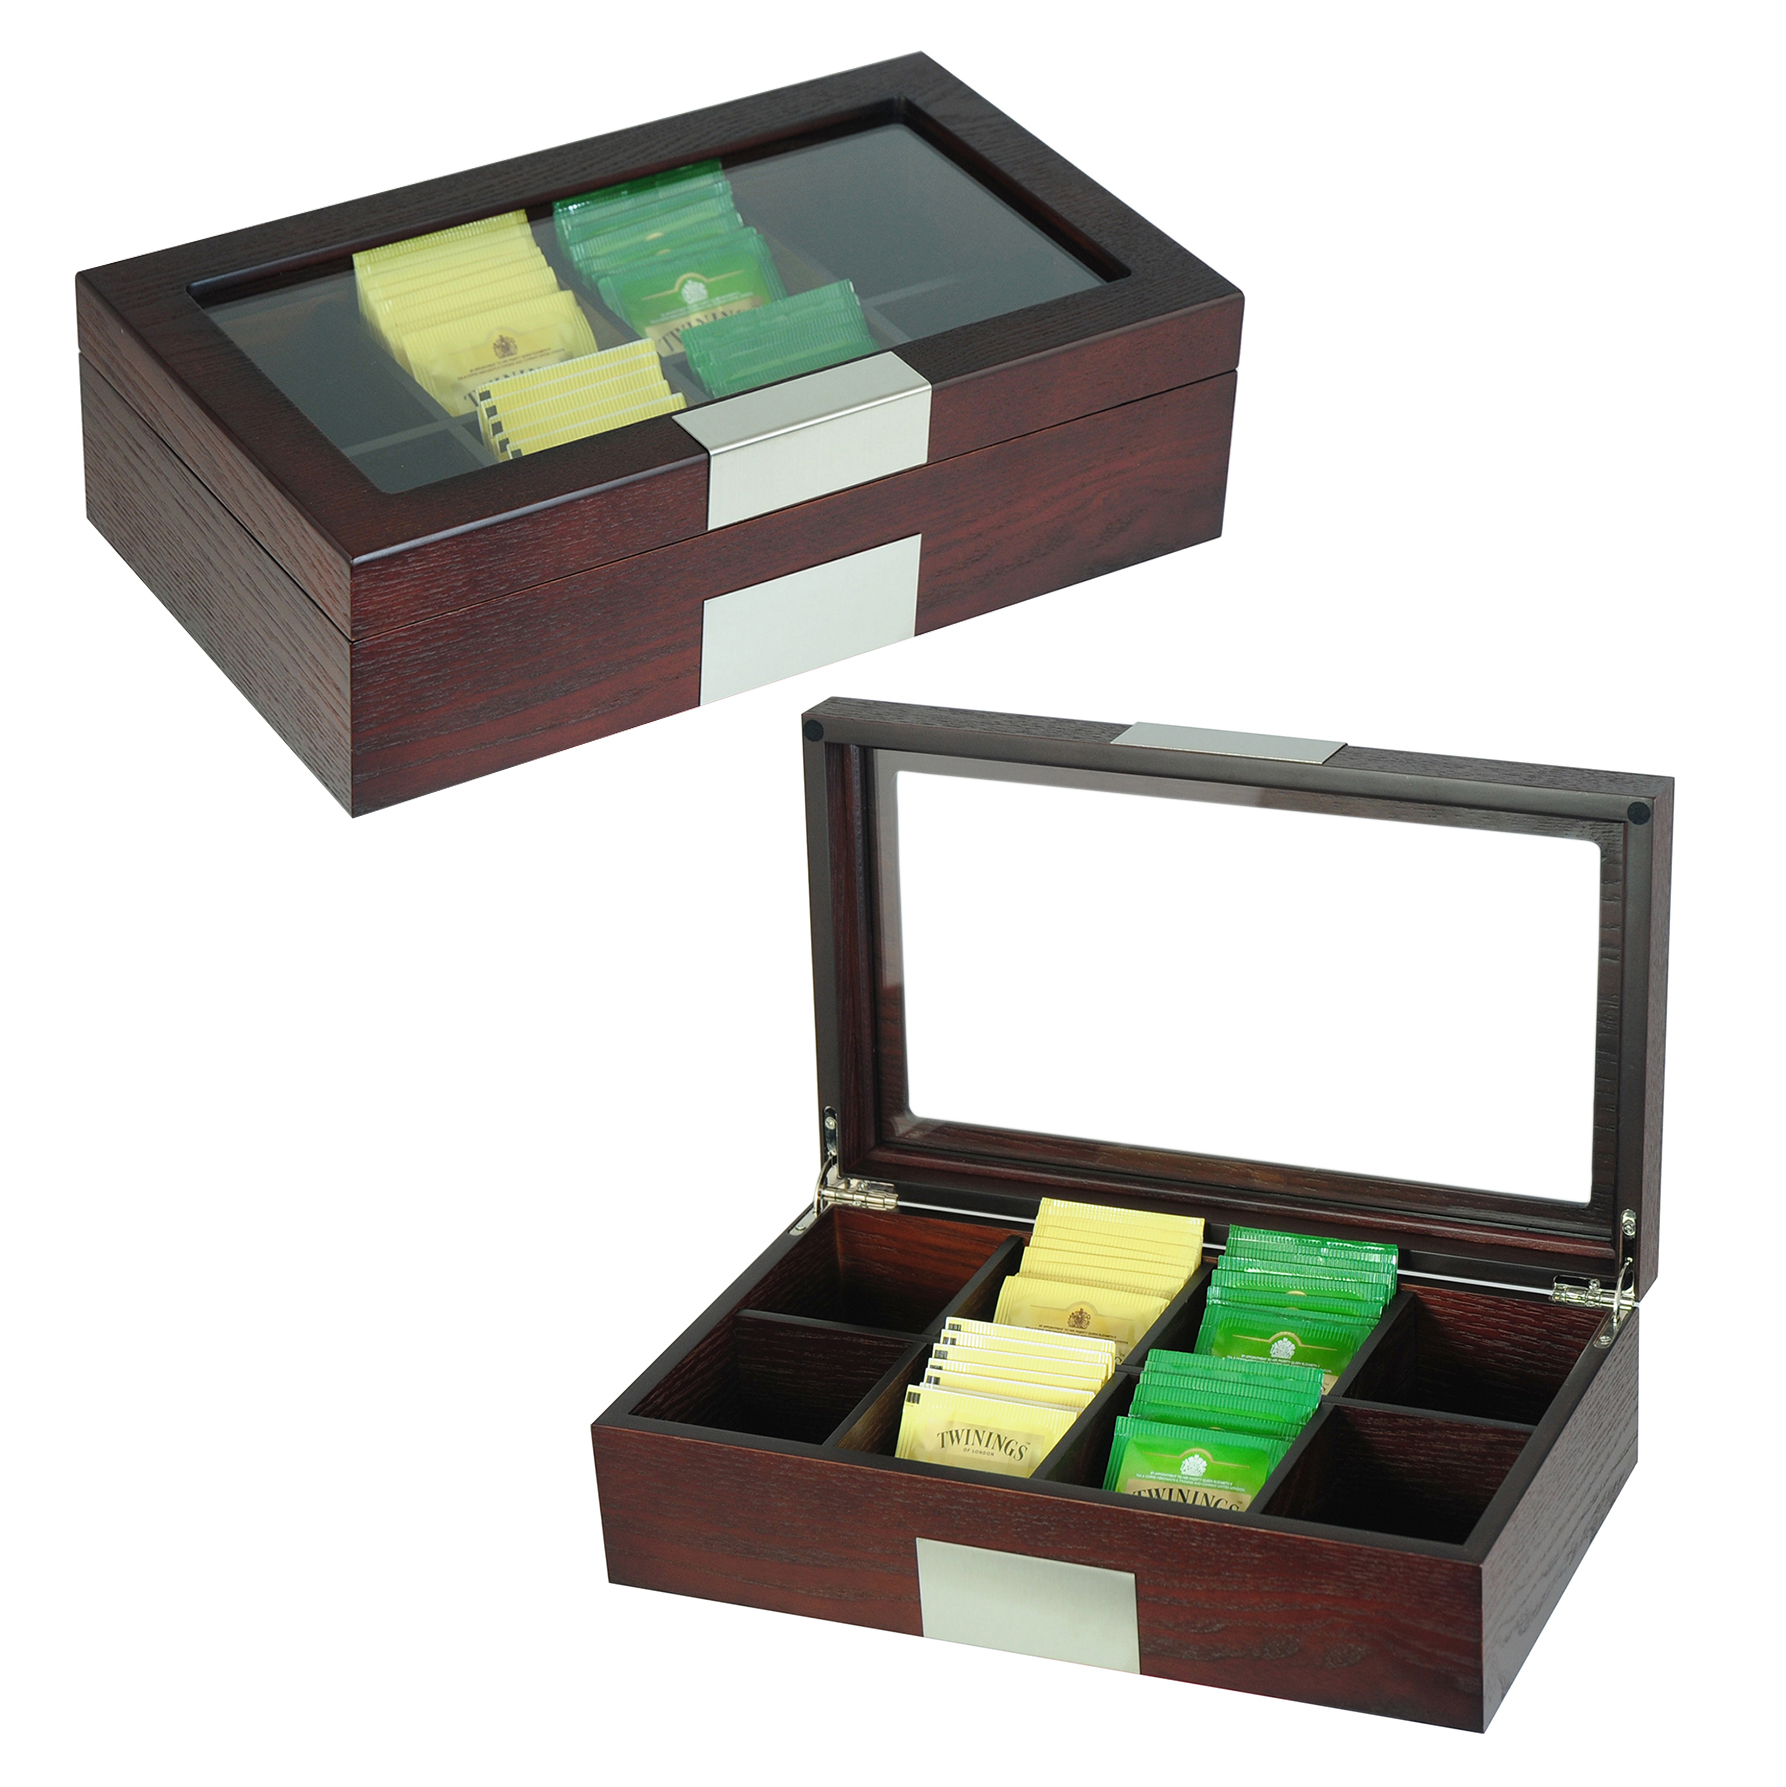 Sonny Wooden Tea Box 8 Compartments Cherry OAK Grain Veneer Tea Organizer Sample Order Acceptable